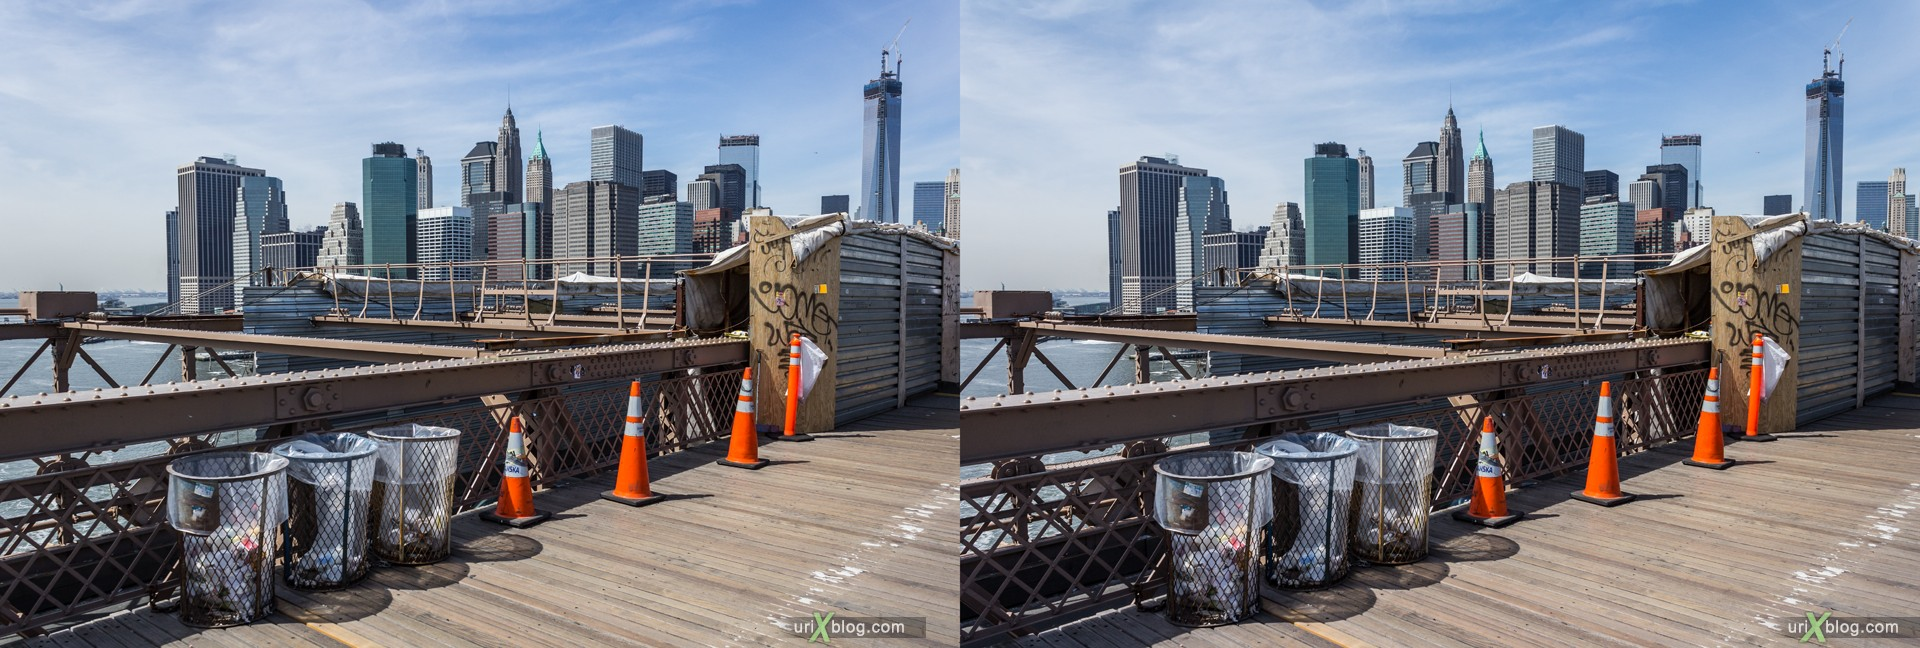 2013, Brooklyn Bridge, NYC, New York City, USA, 3D, stereo pair, cross-eyed, crossview, cross view stereo pair, stereoscopic